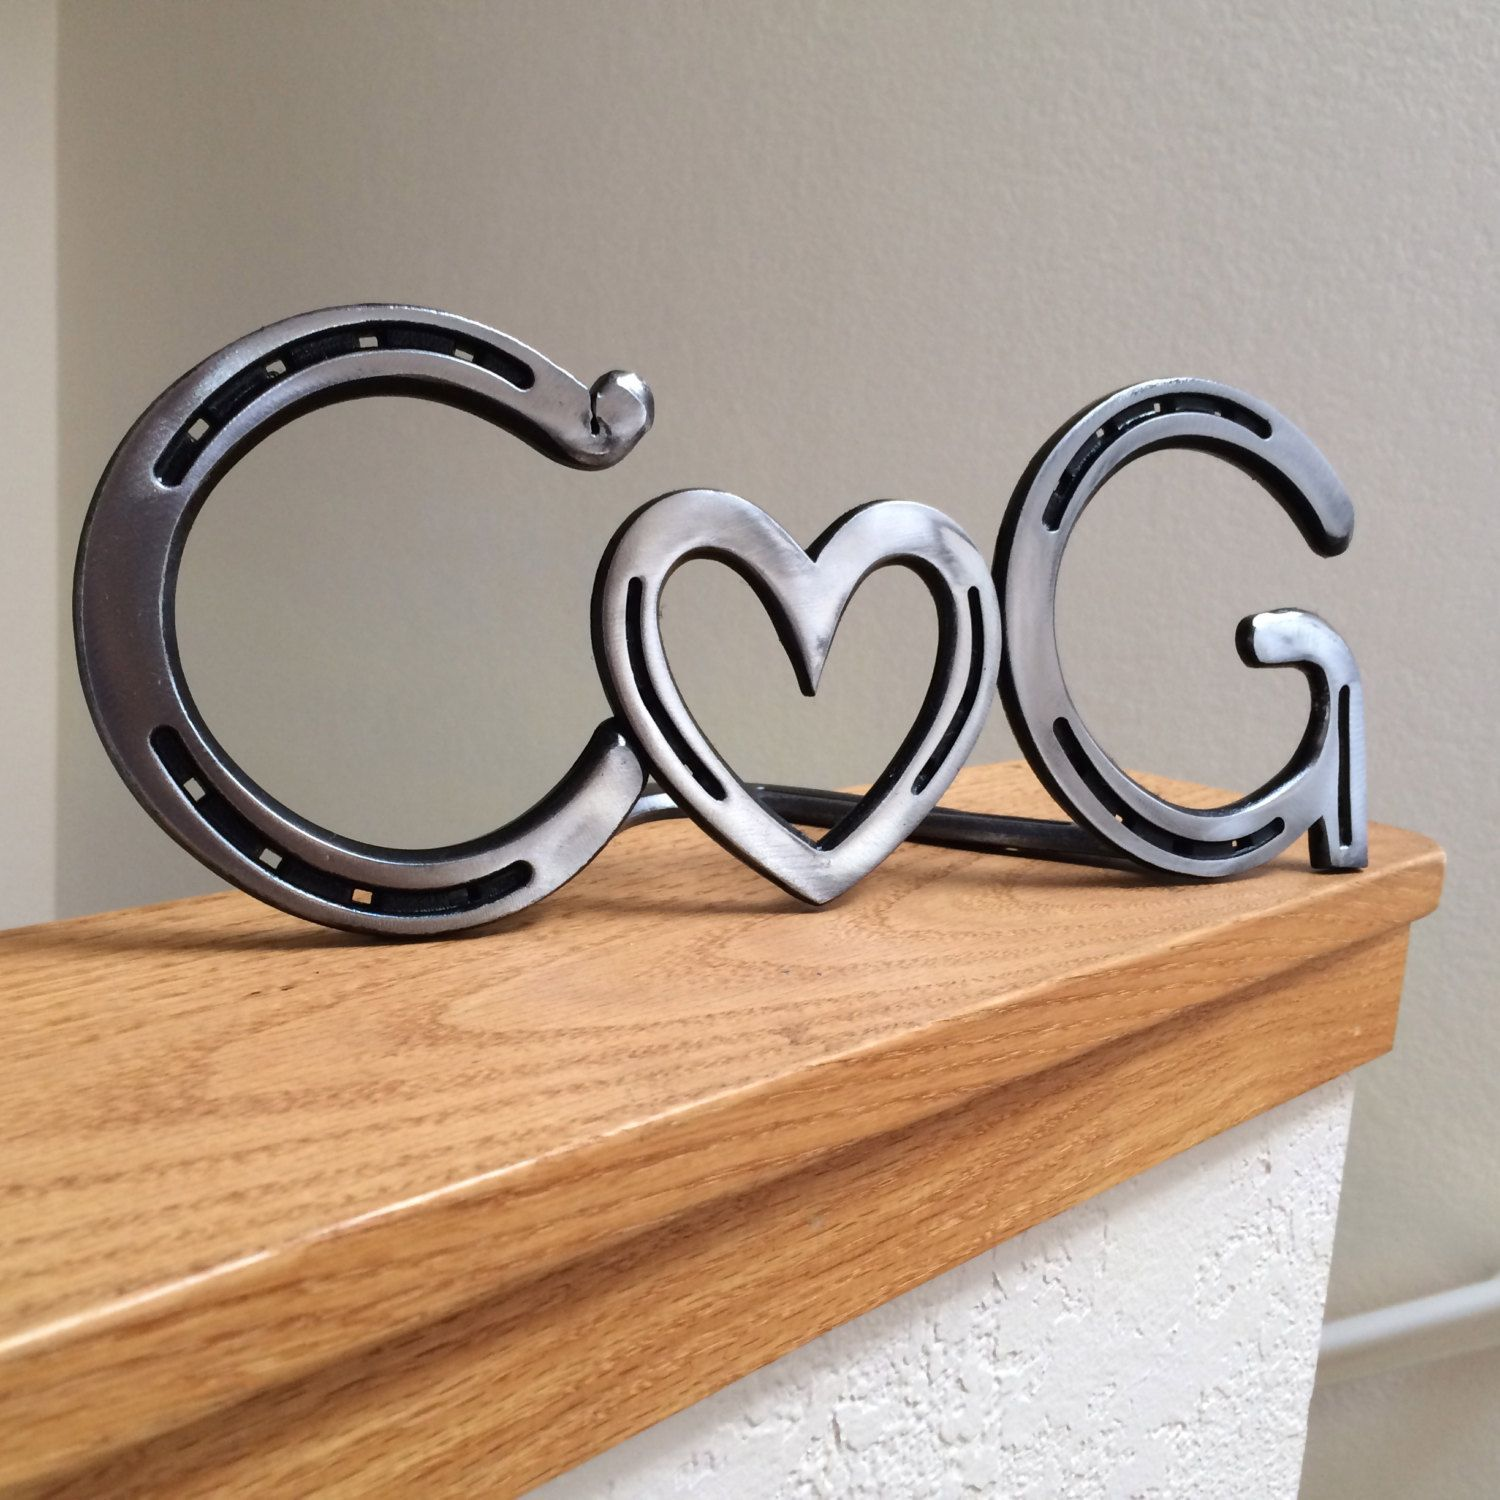 Horseshoe Heart Initials Wedding Decor Or Head Table Centerpiece Country Western Signage Can Be Engraved